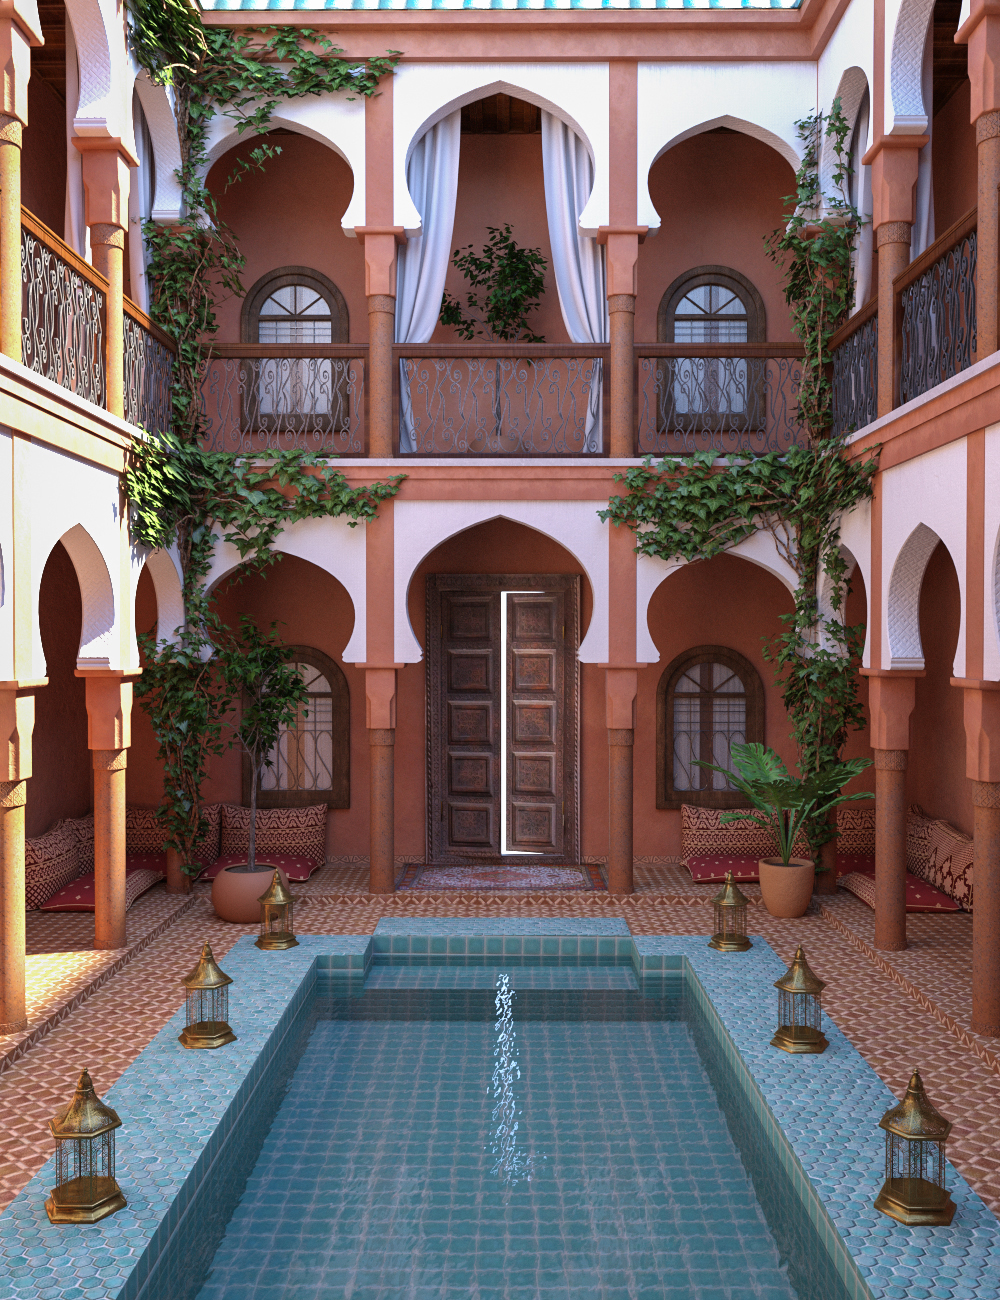 Moroccan Courtyard Place by: 3dLab, 3D Models by Daz 3D